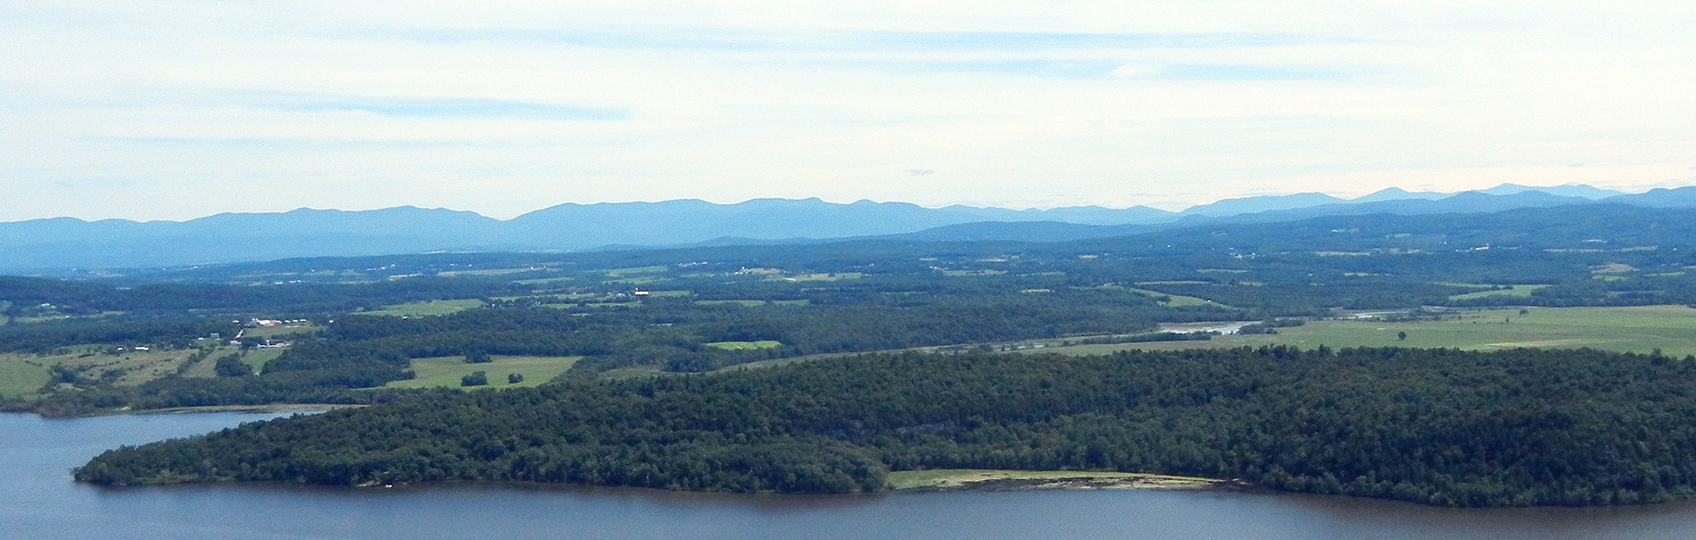 orwell vermont real estate